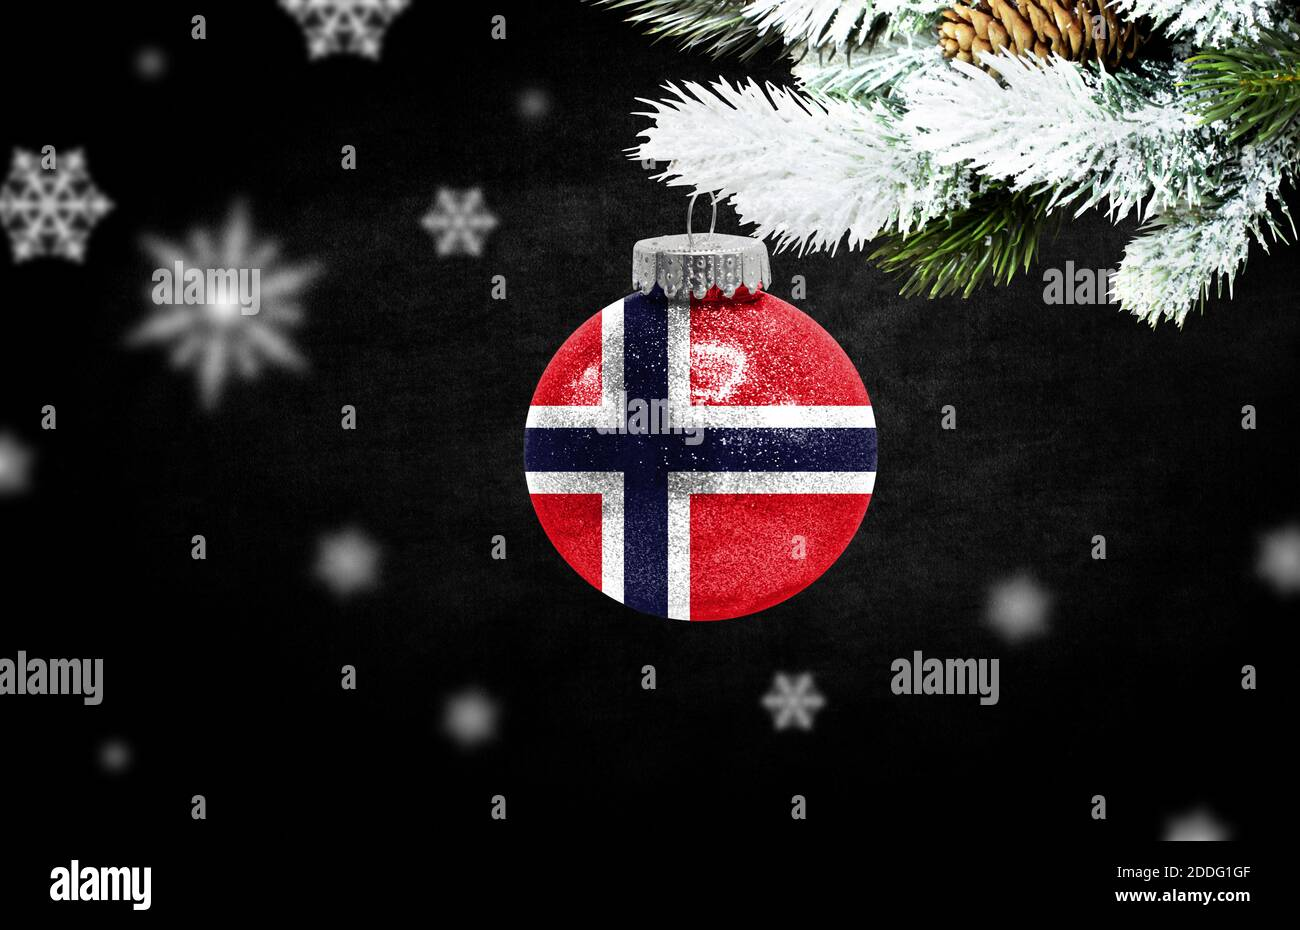 Norway Christmas Eve High Resolution Stock Photography And Images Alamy